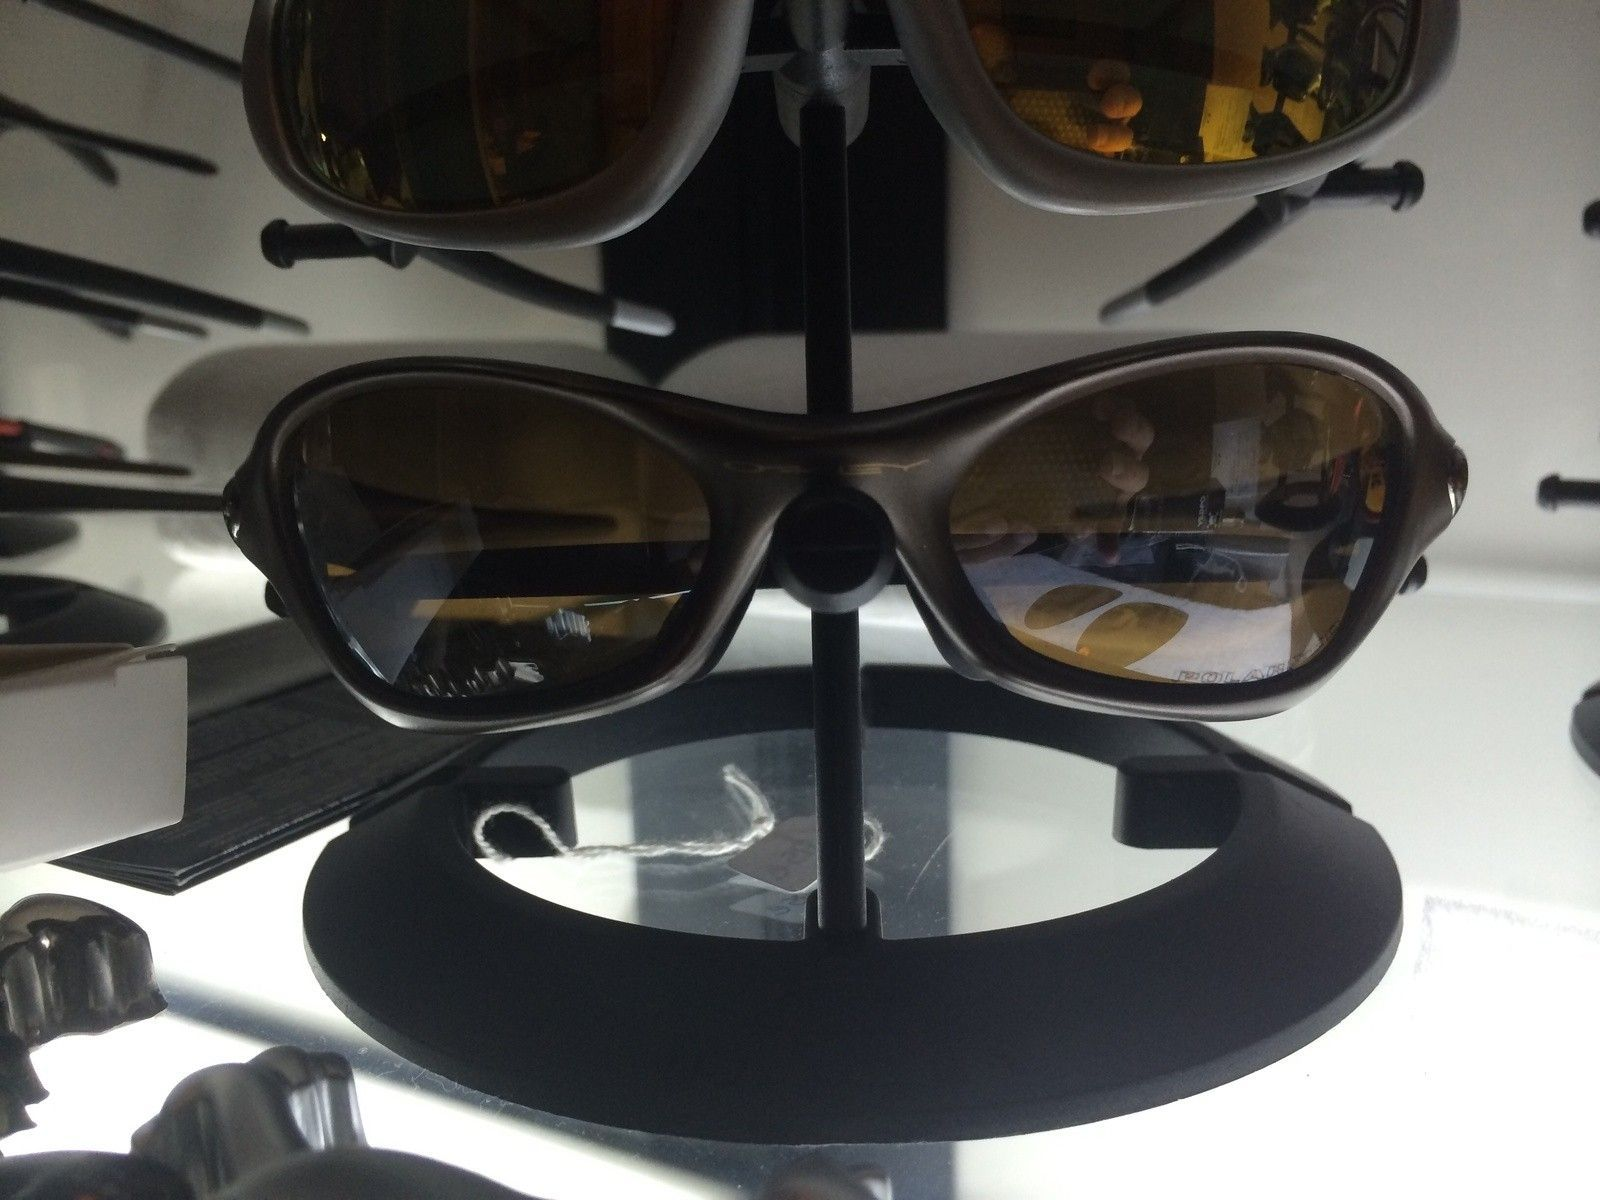 Oakley sunglasses identification - image.jpg